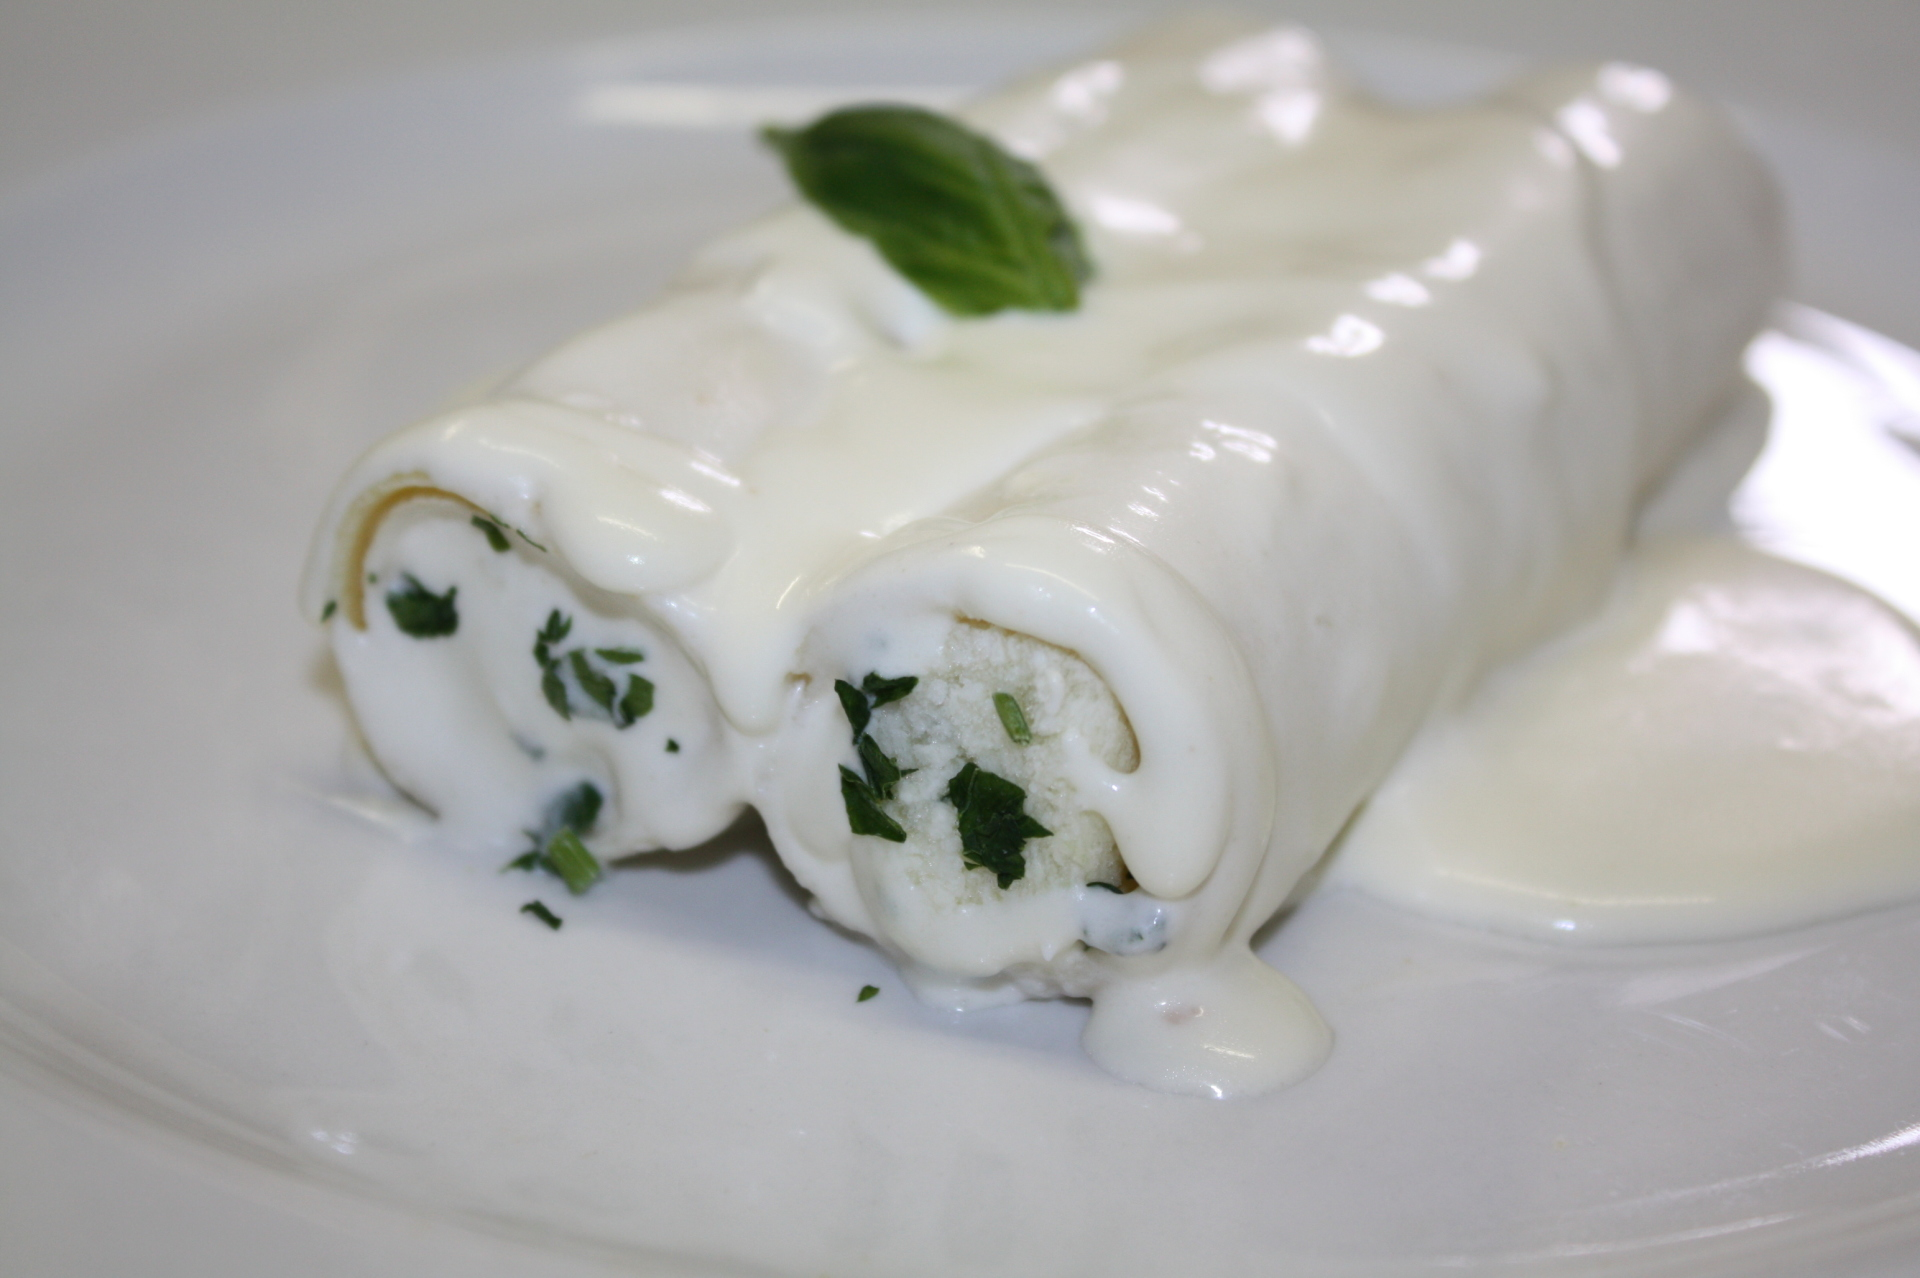 Cream Manicotti Price $24 (10pcs)